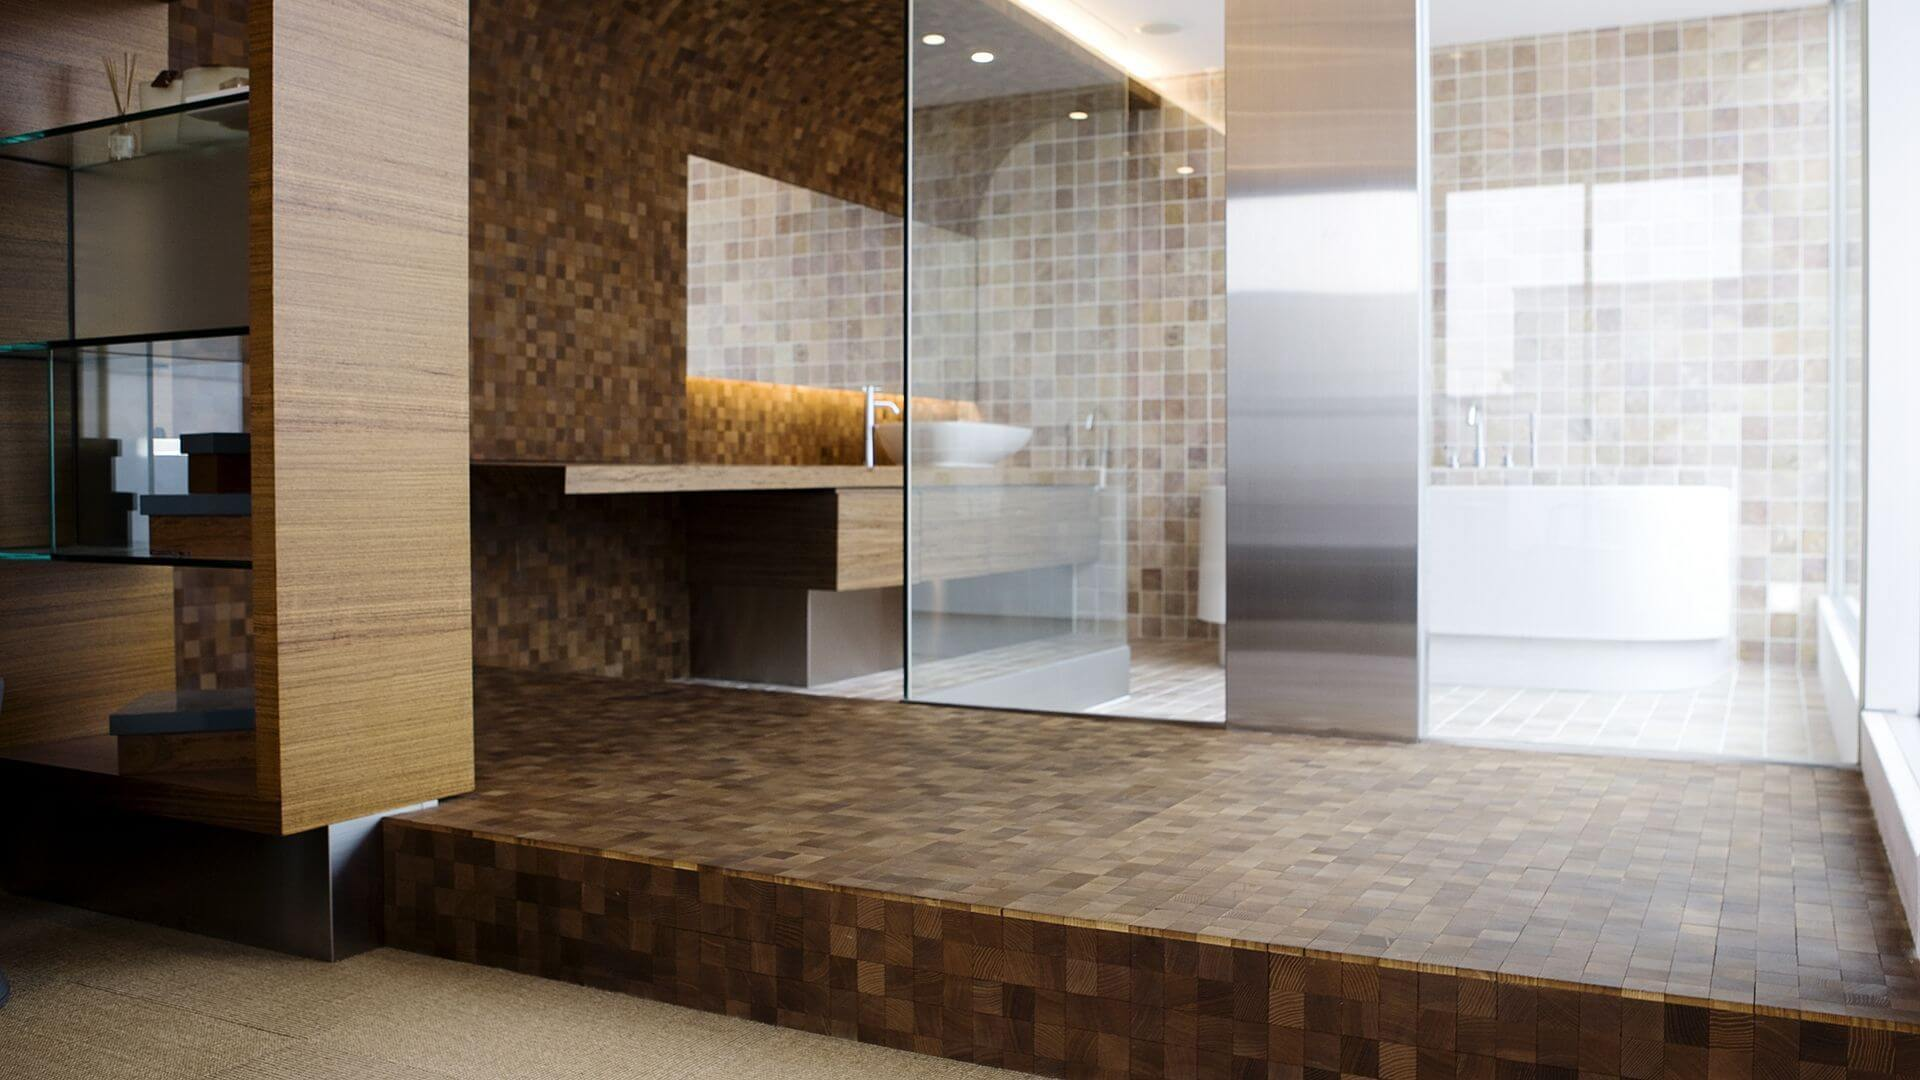 end grain wood flooring in the bathroom